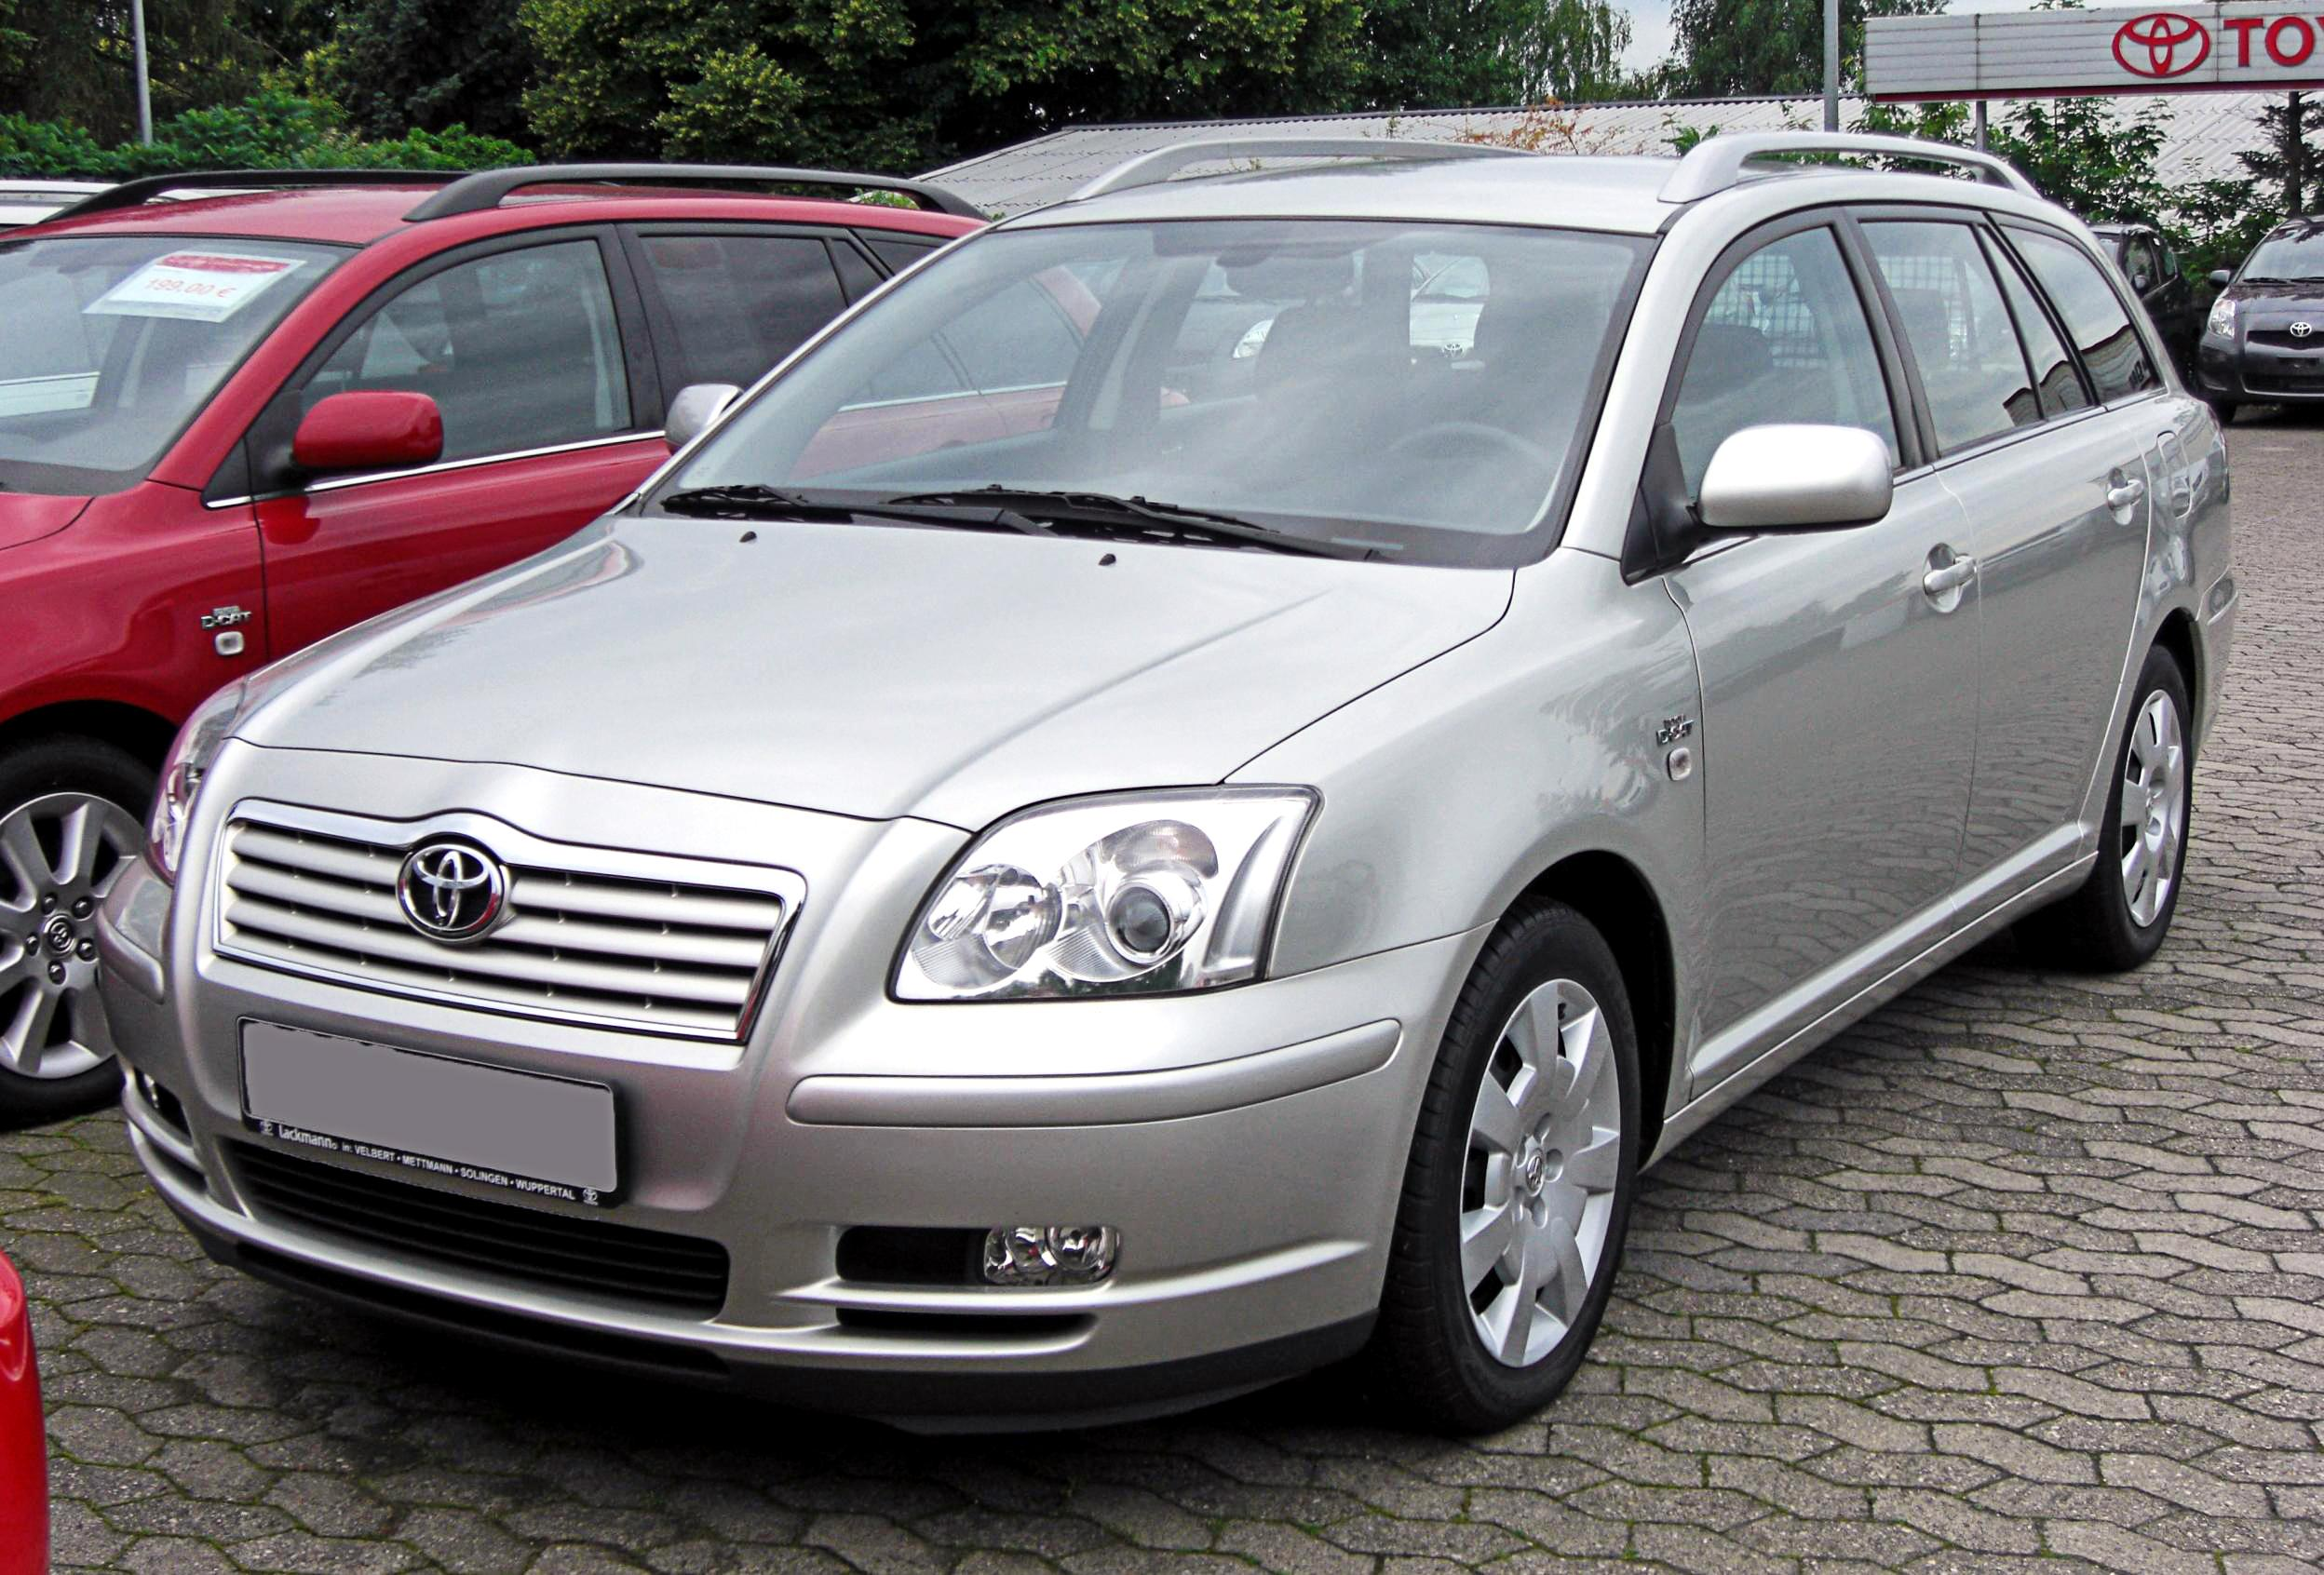 2005 toyota avensis ii pictures information and specs auto. Black Bedroom Furniture Sets. Home Design Ideas